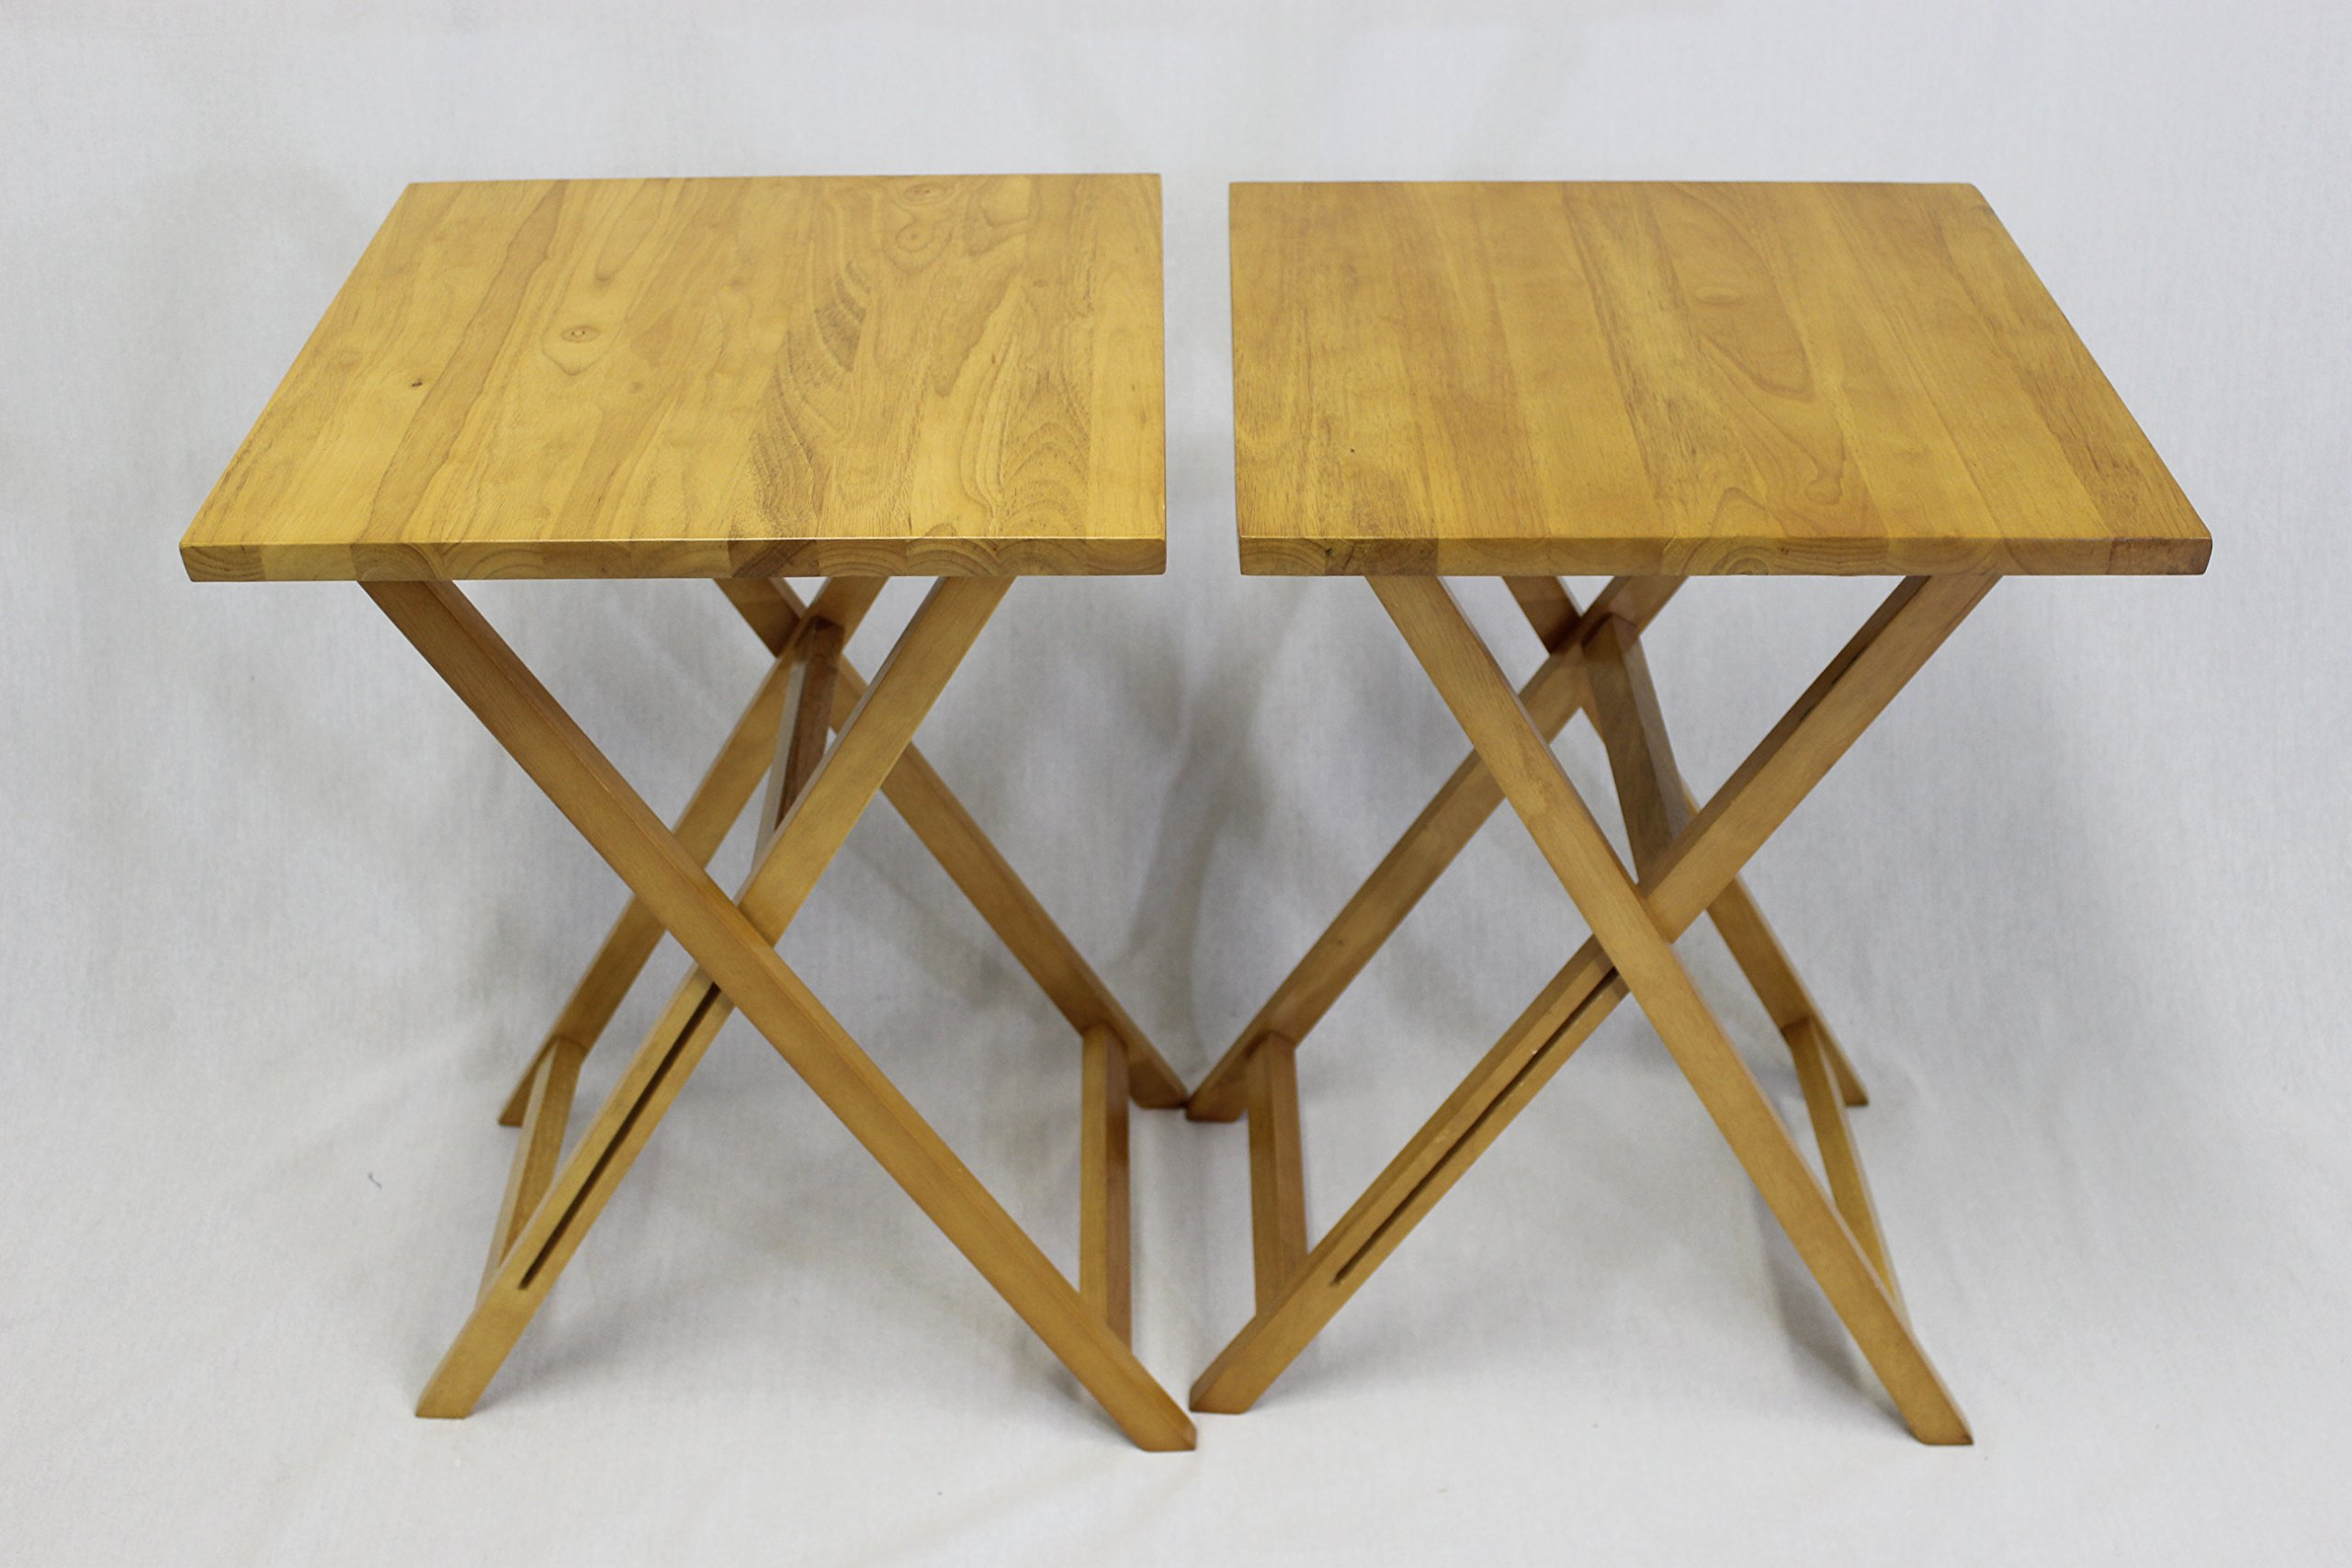 eHemco Ez Folding Tv Tray Table Square Top- Hard Wood in Pecan Set of 2